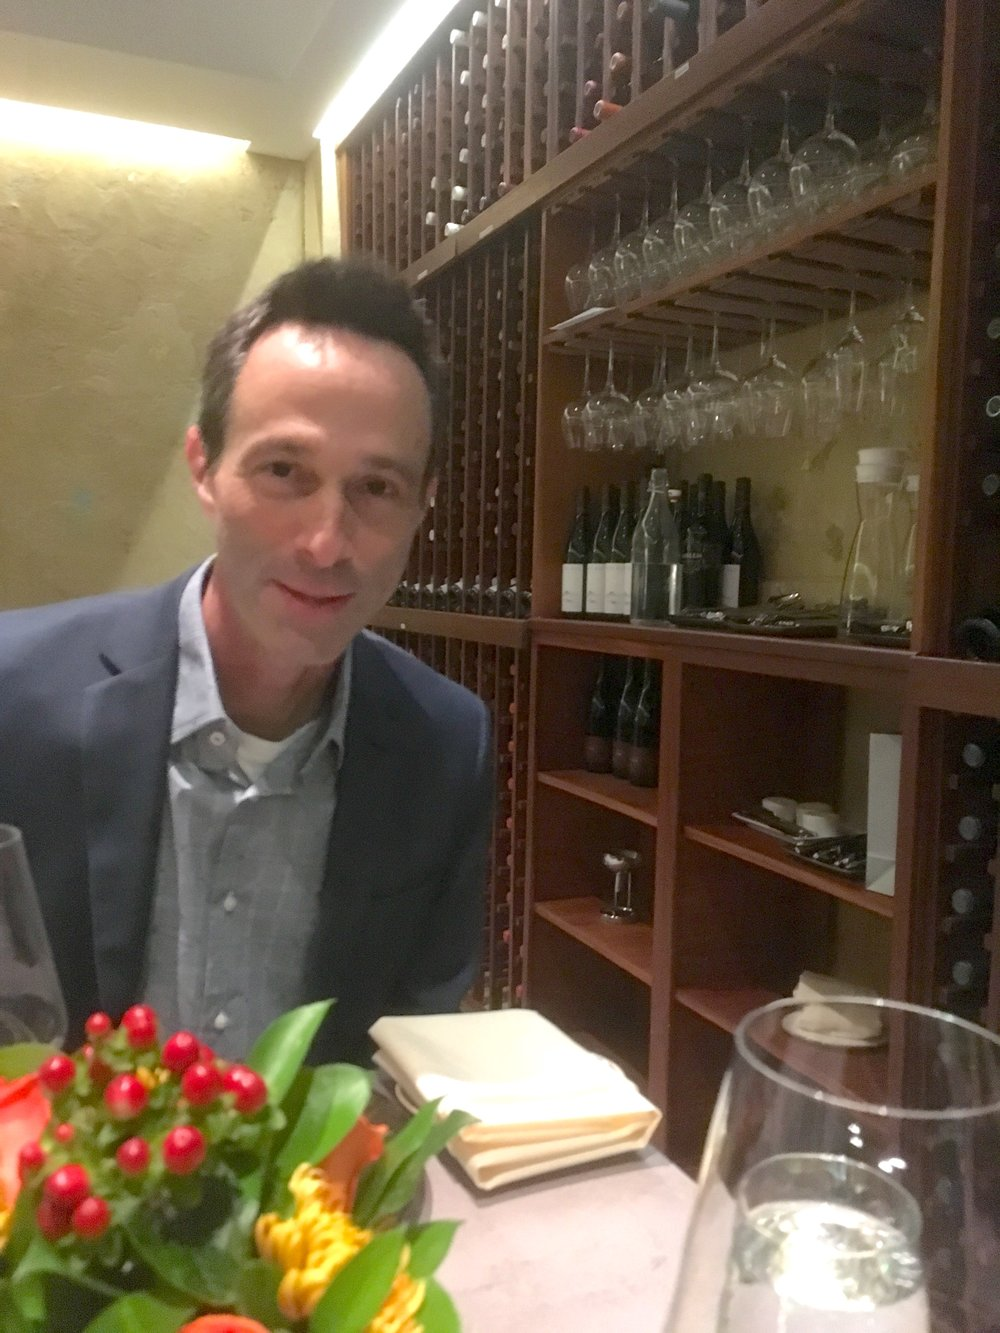 Mark makes for a very handsome dinner date and looks quite at home in Clarity's kitchen-view cellar.